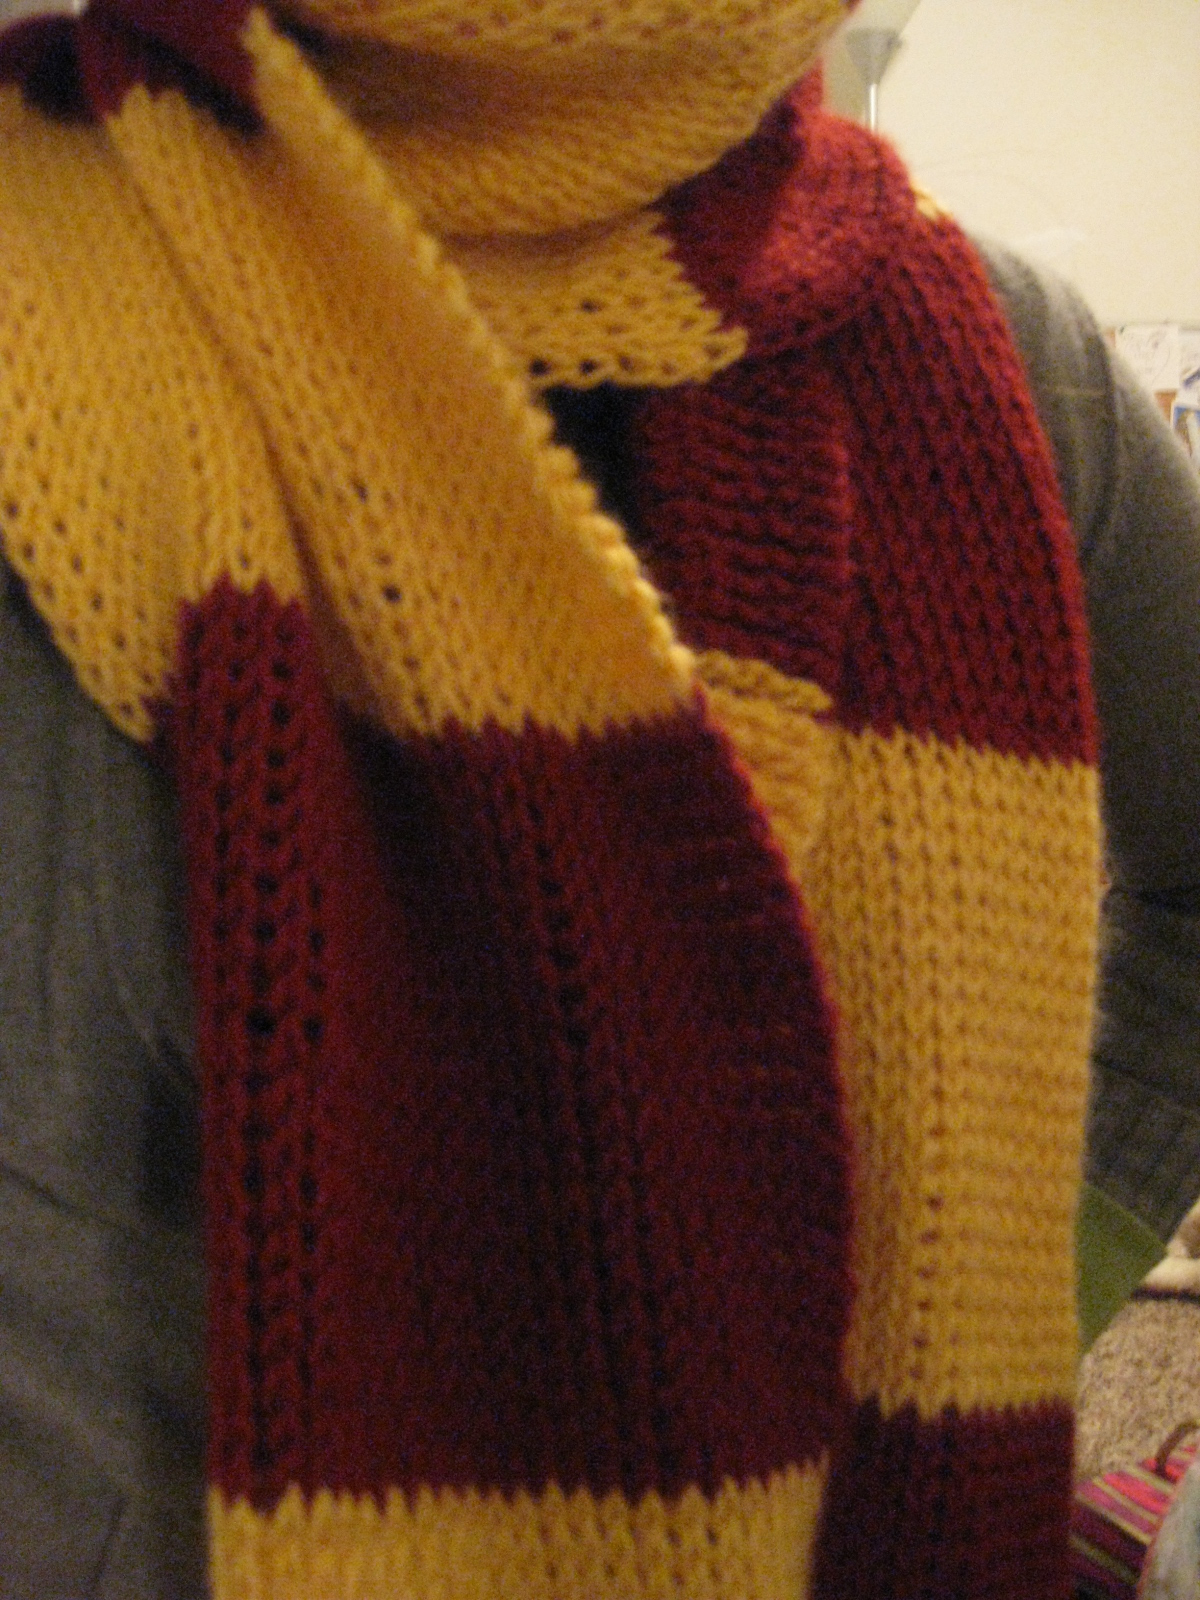 Knitting Pattern For Gryffindor Scarf : Live. Love. Laugh.: Harry Potter Scarf!